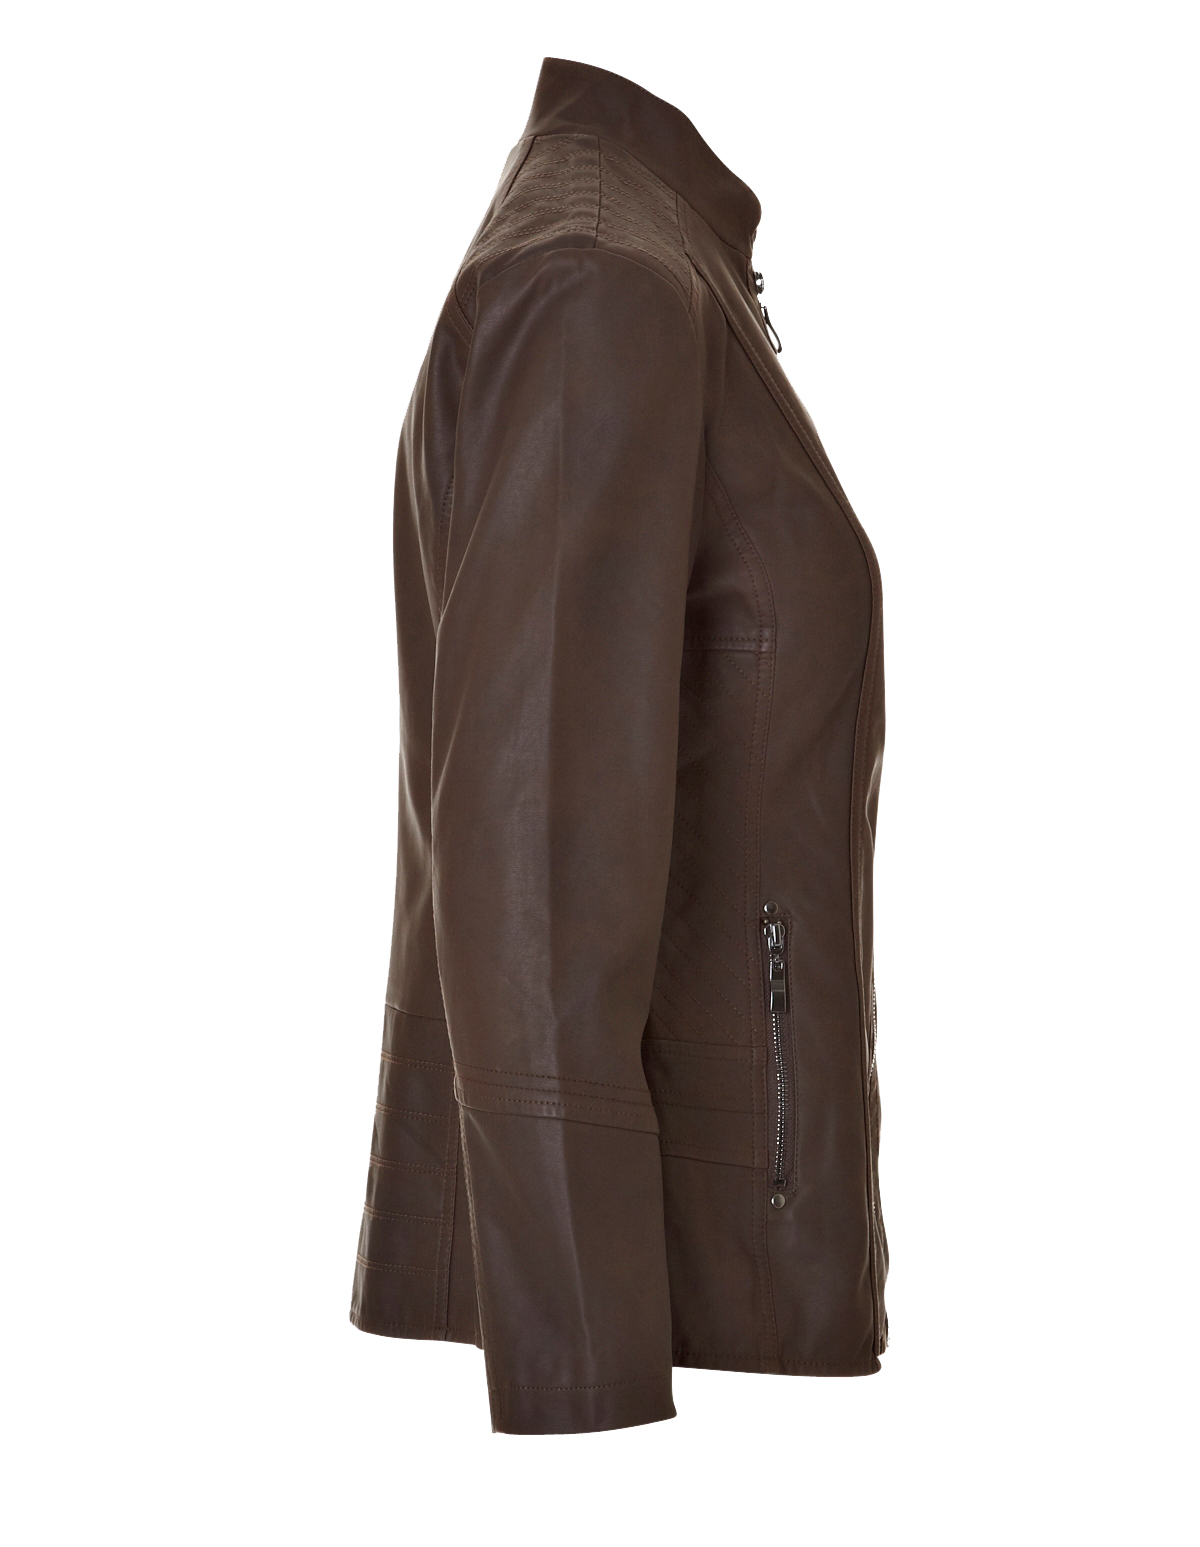 Shop for men's brown faux leather vest online at Men's Wearhouse. Browse the latest brown faux leather vest styles & selection from sofltappreciate.tk, the leader in .